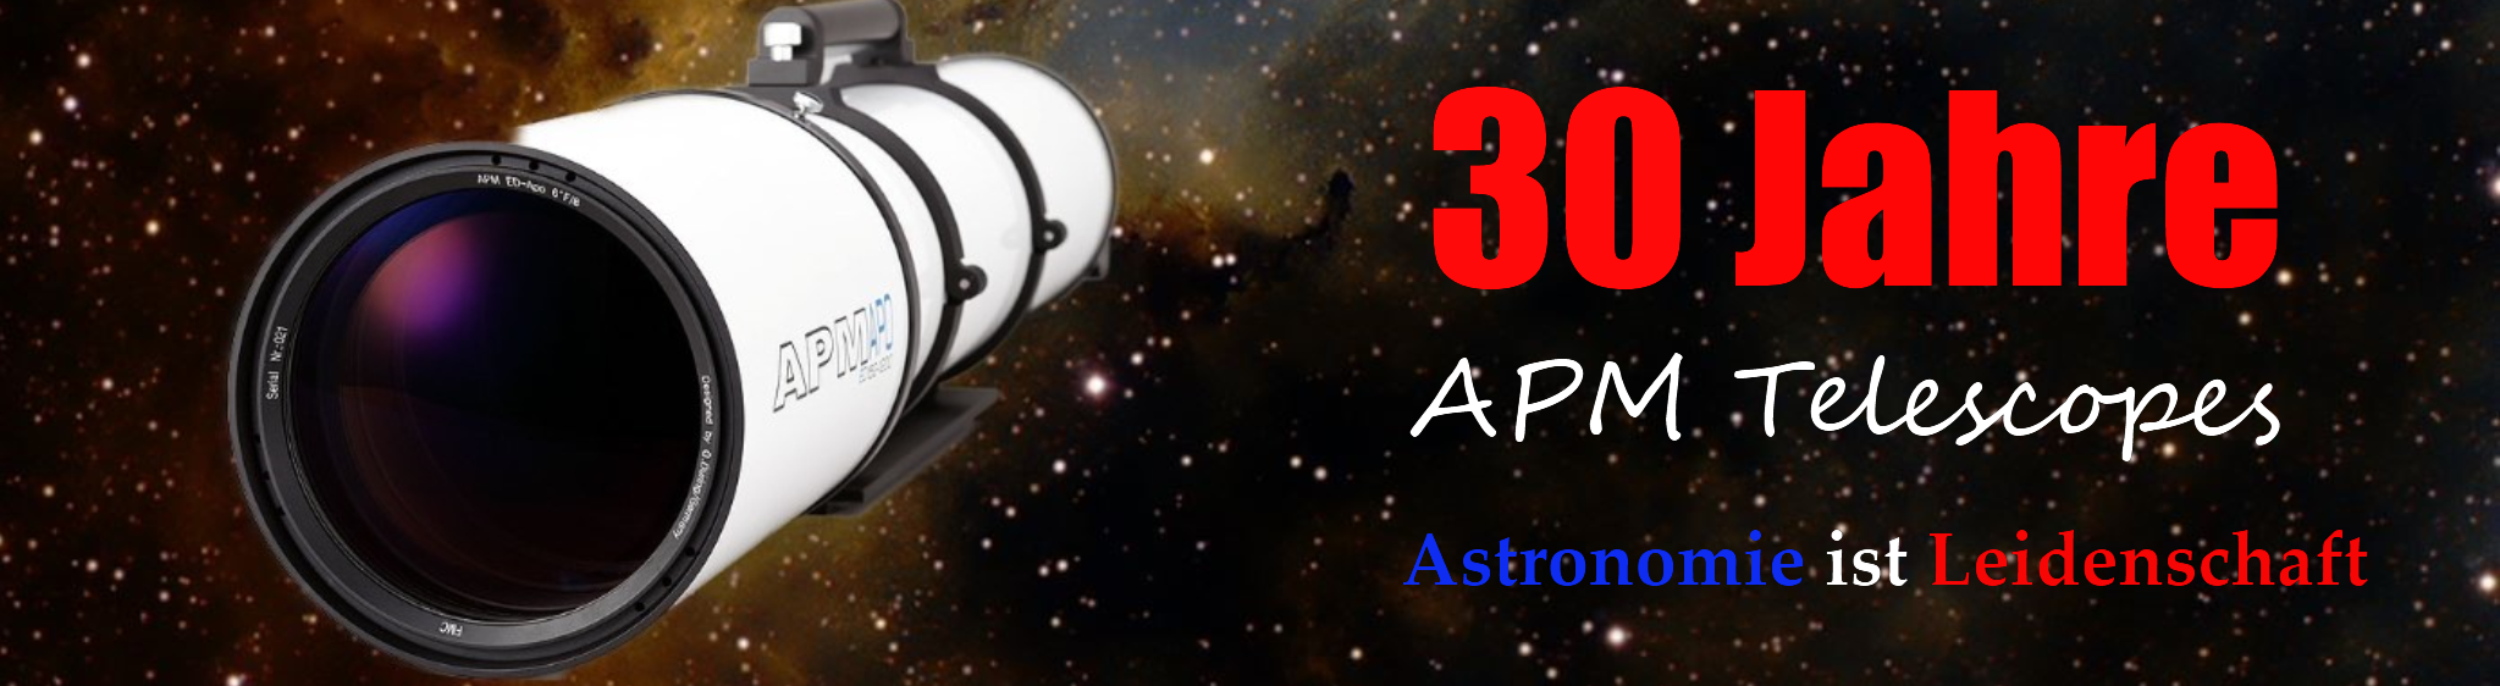 APM Telescopes Blog